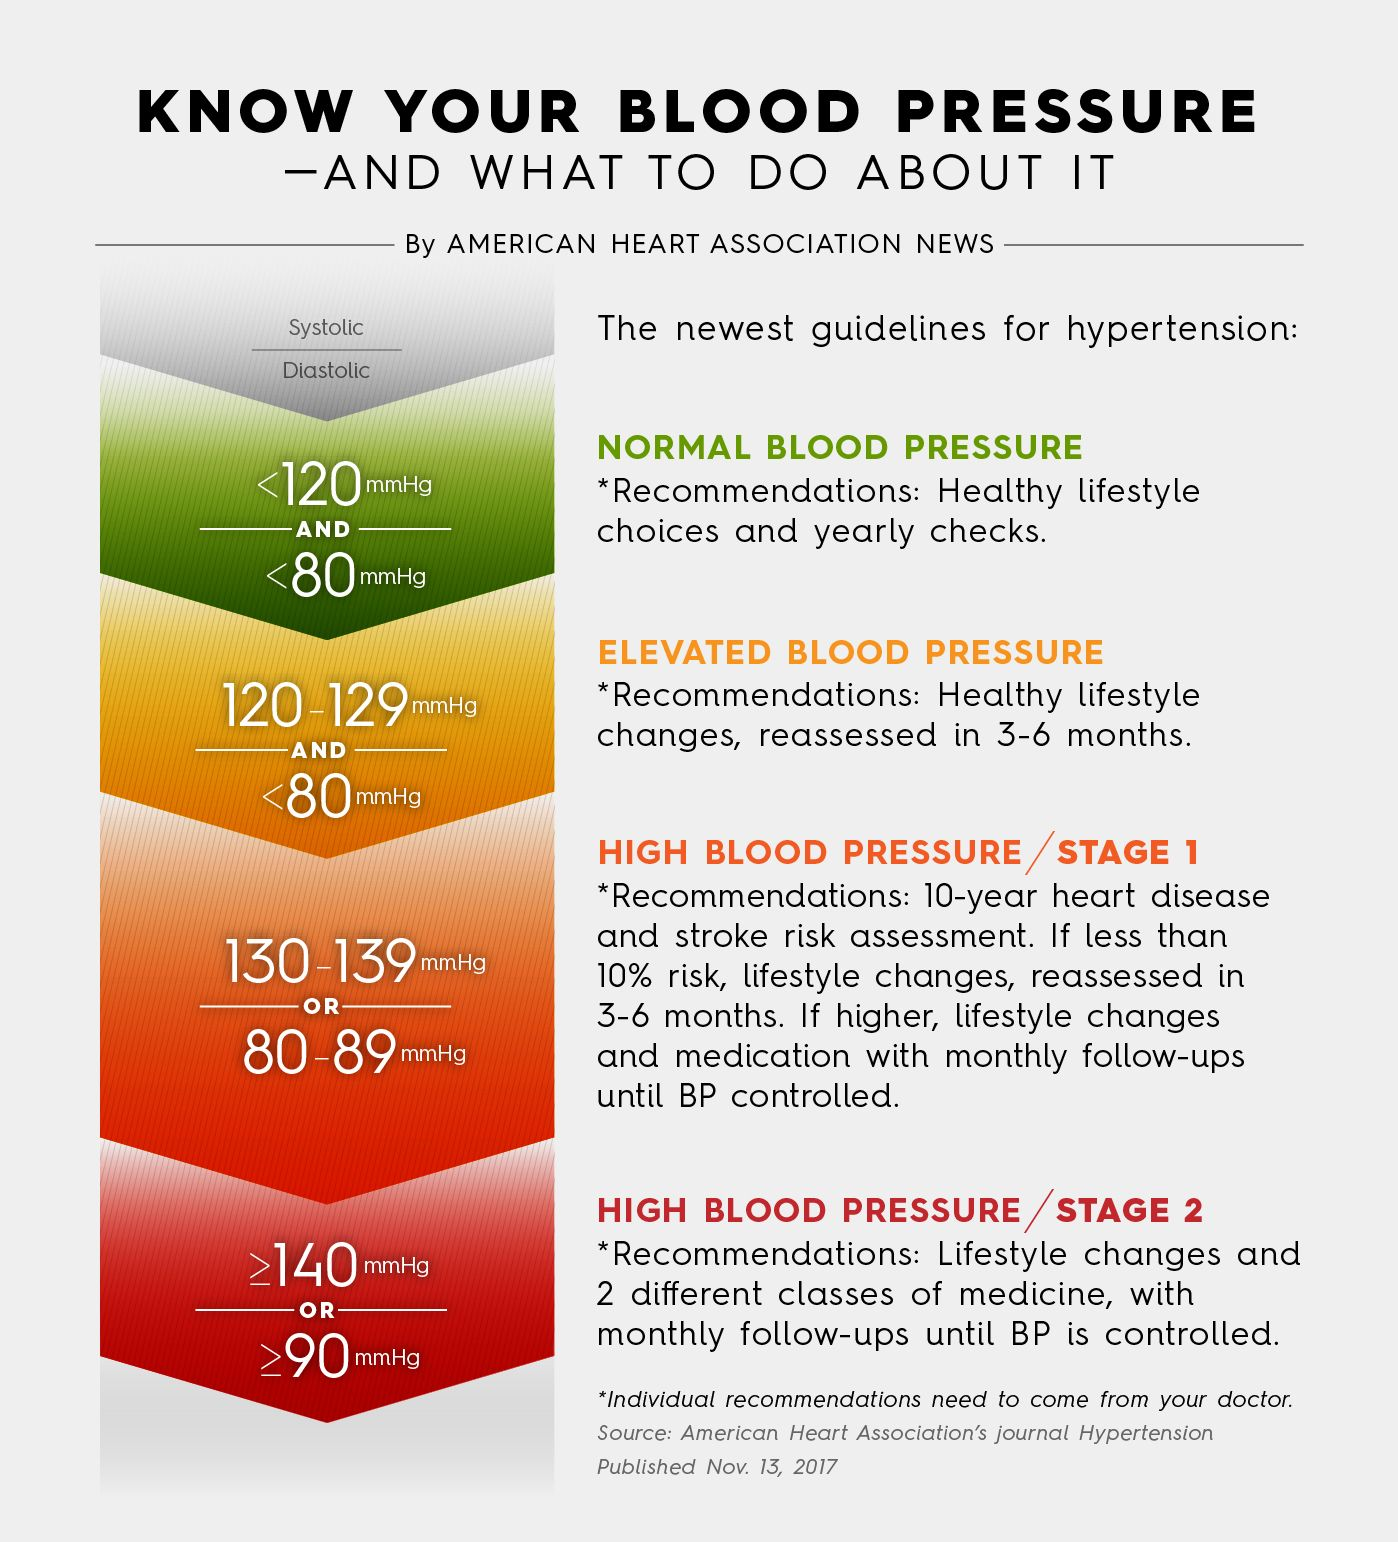 High blood pressure re-defined, 130/80 now considered high